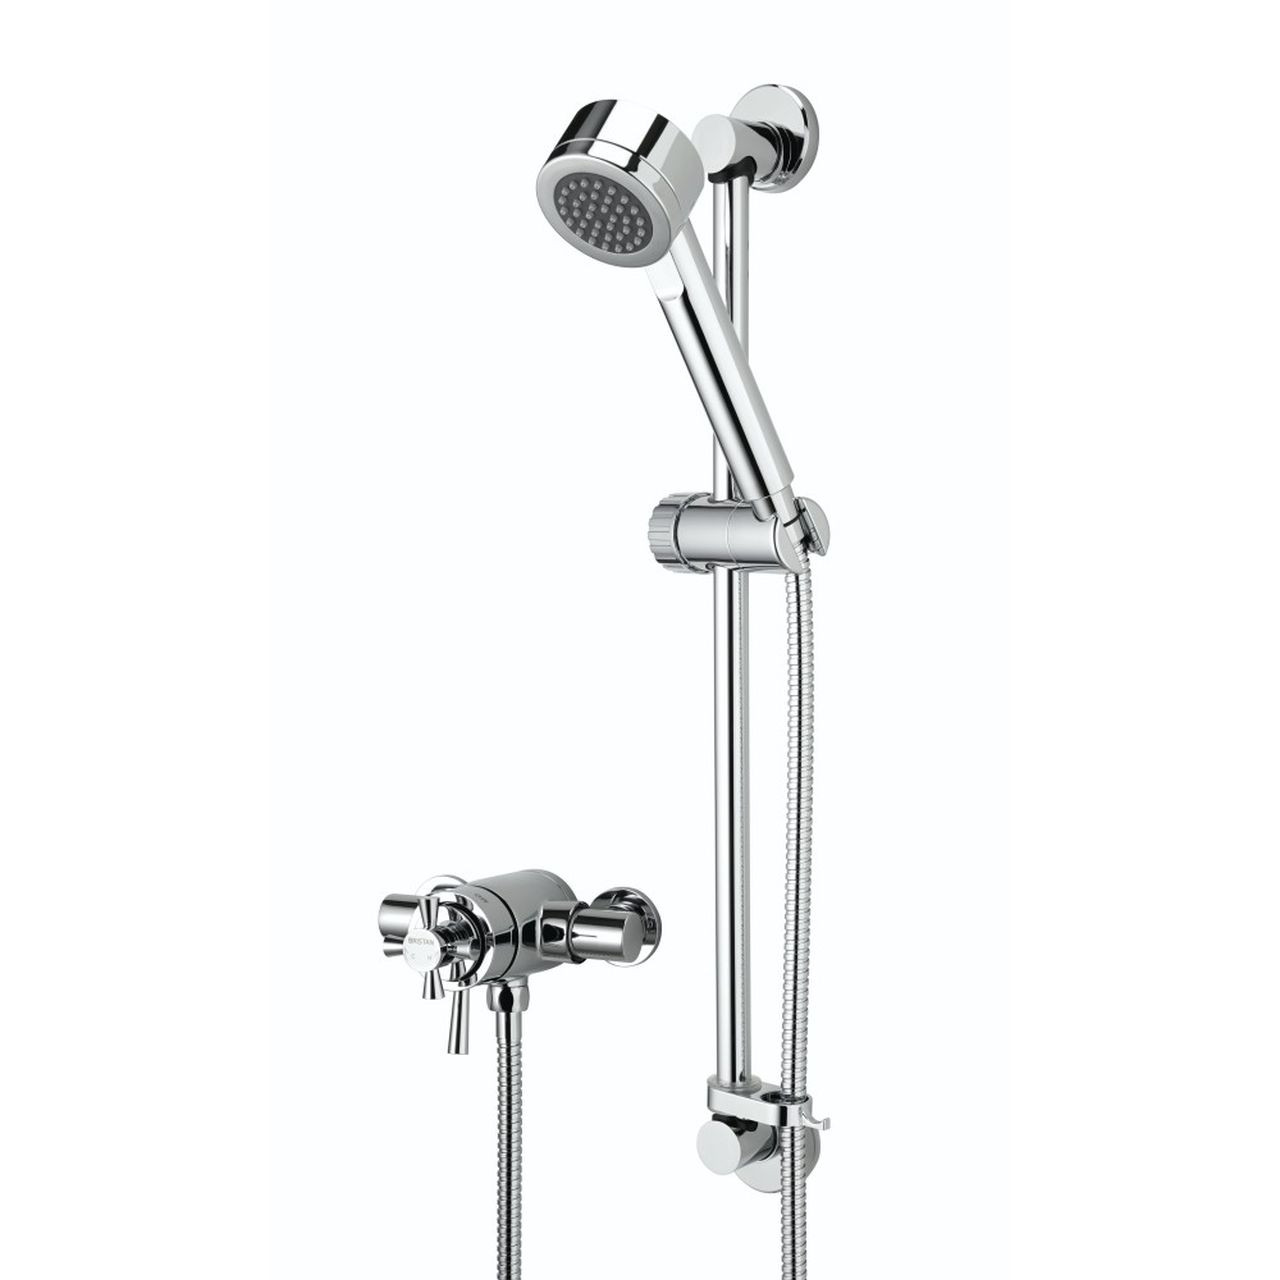 Bristan Rio Chrome Surface Mounted Shower Valve with Adjustable Riser - RO2-SHXAR-C